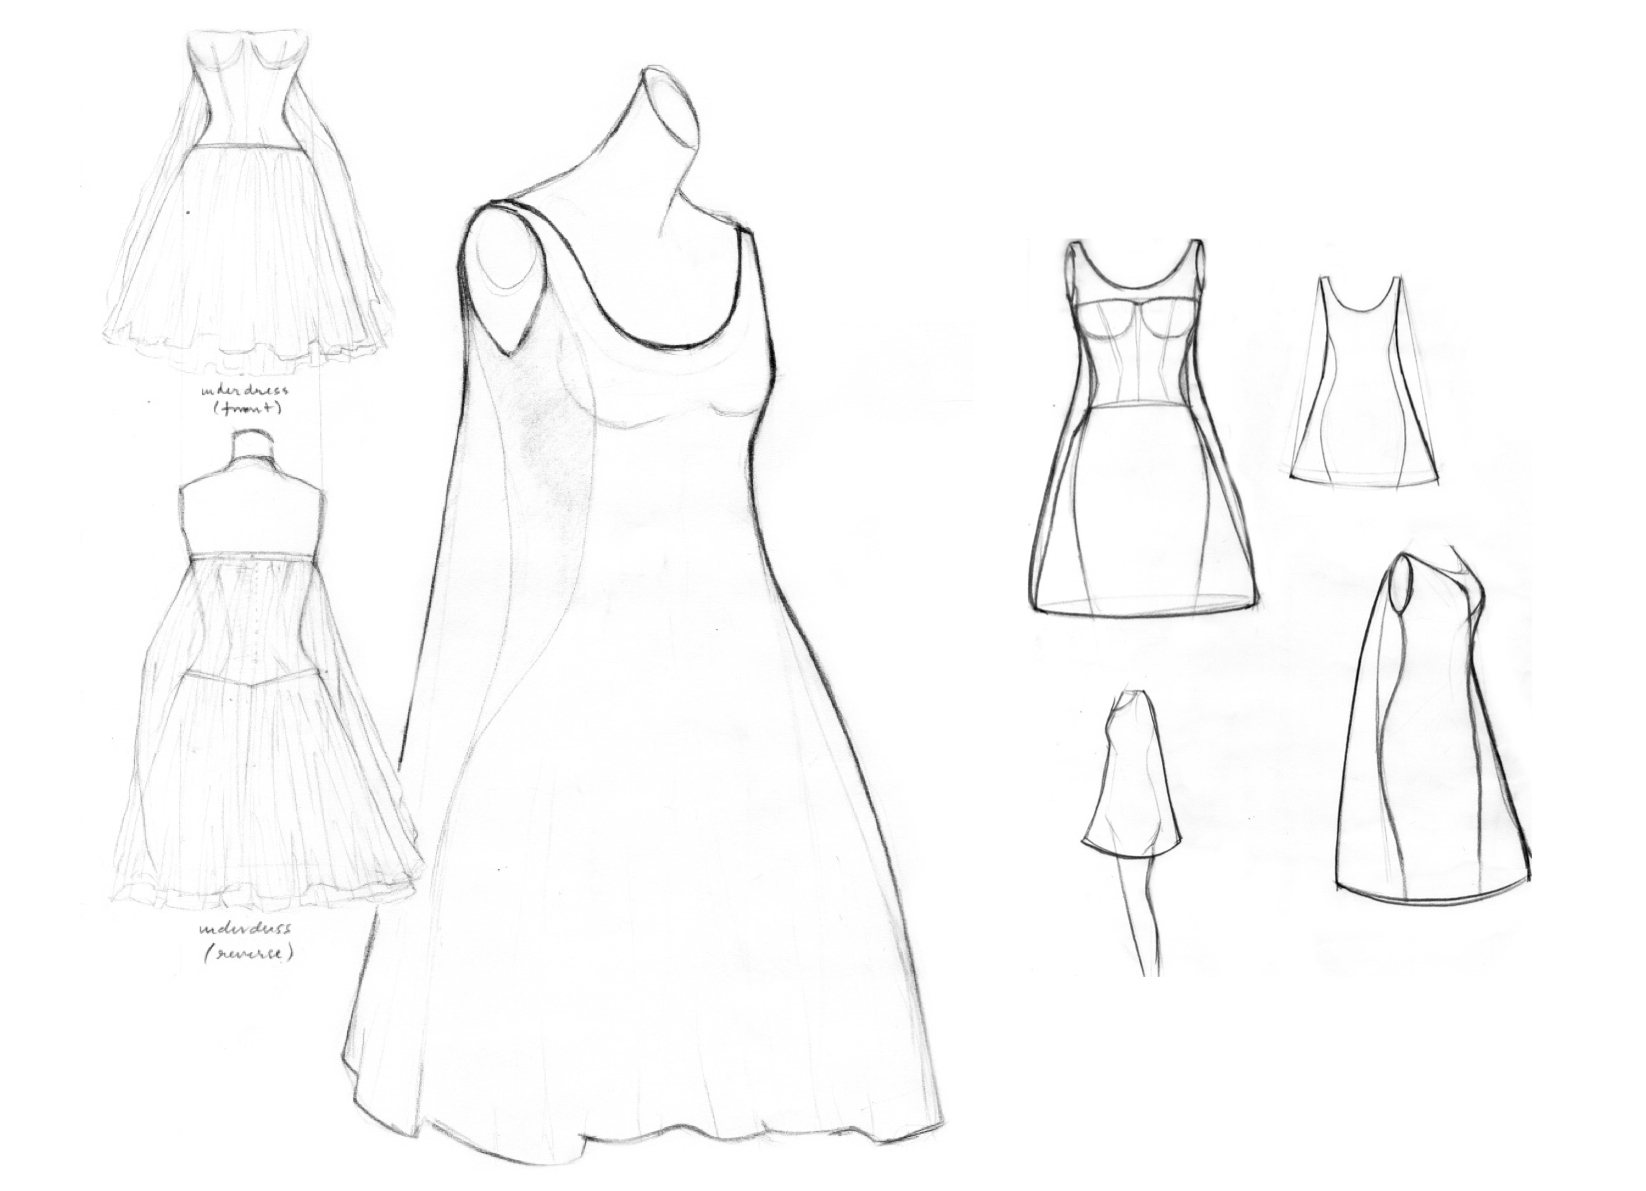 Sketches of inspiration, dress and corset